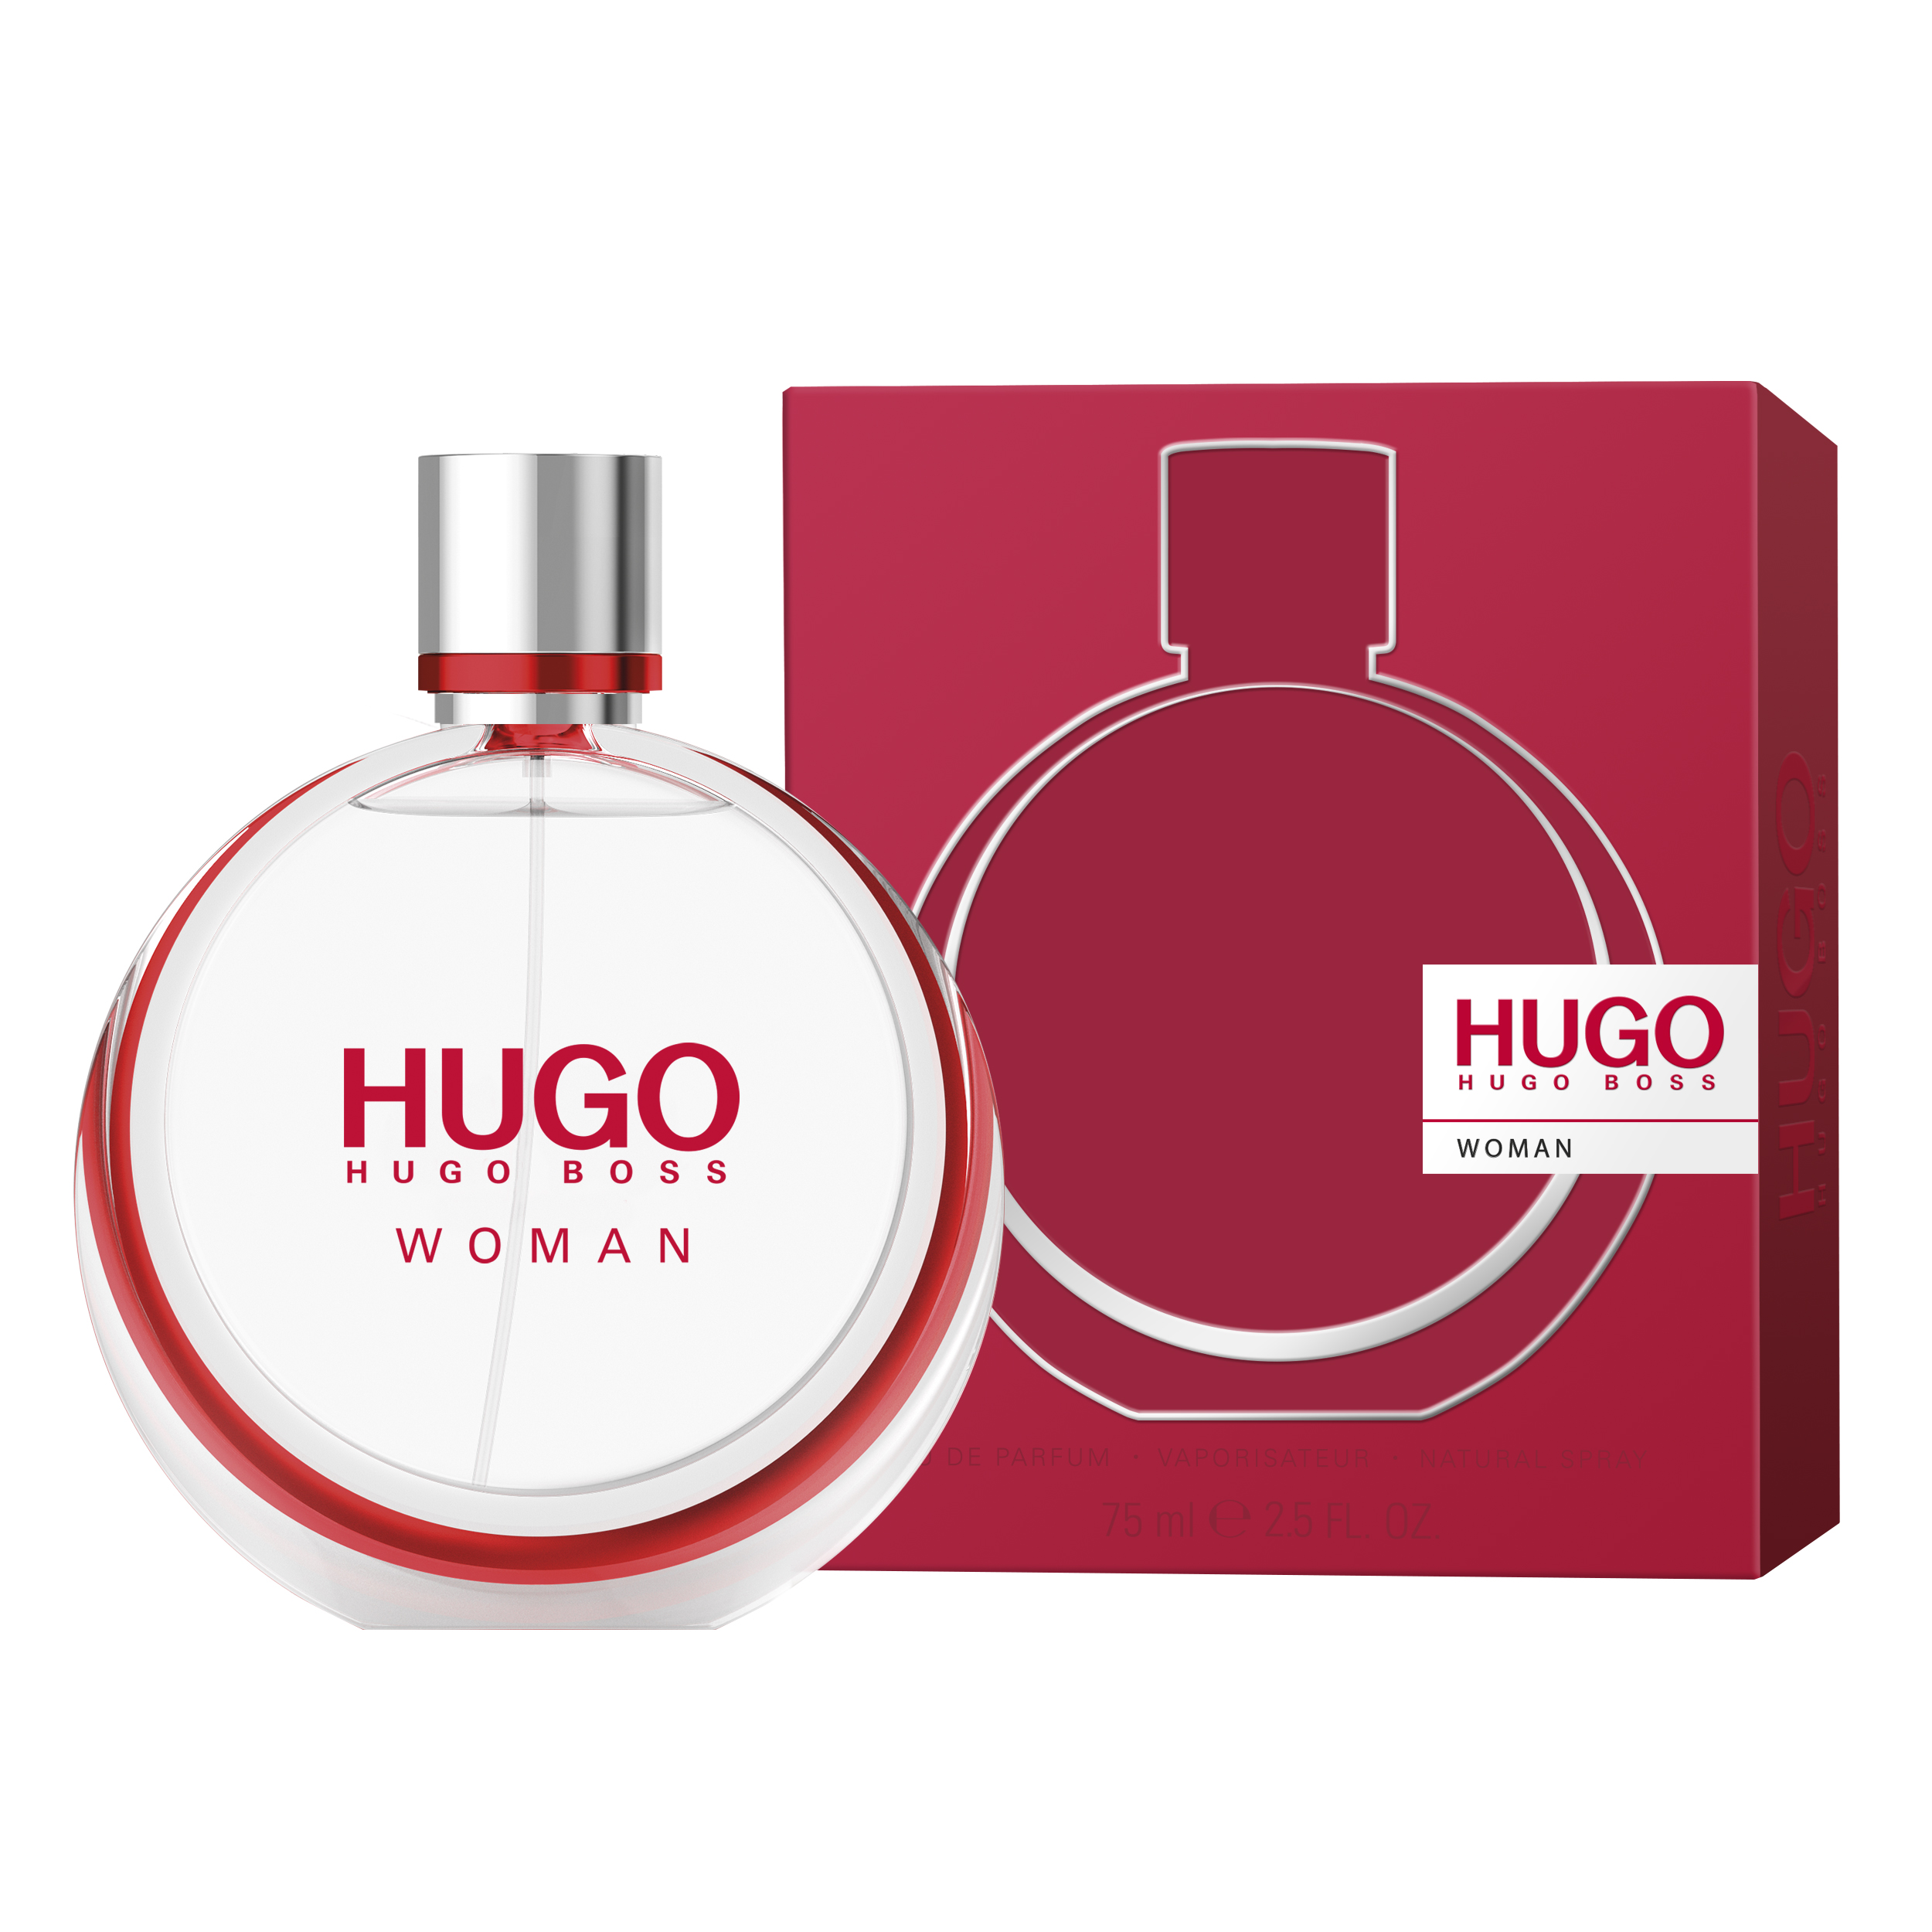 review new hugo boss hugo woman edp lipgloss is my life. Black Bedroom Furniture Sets. Home Design Ideas